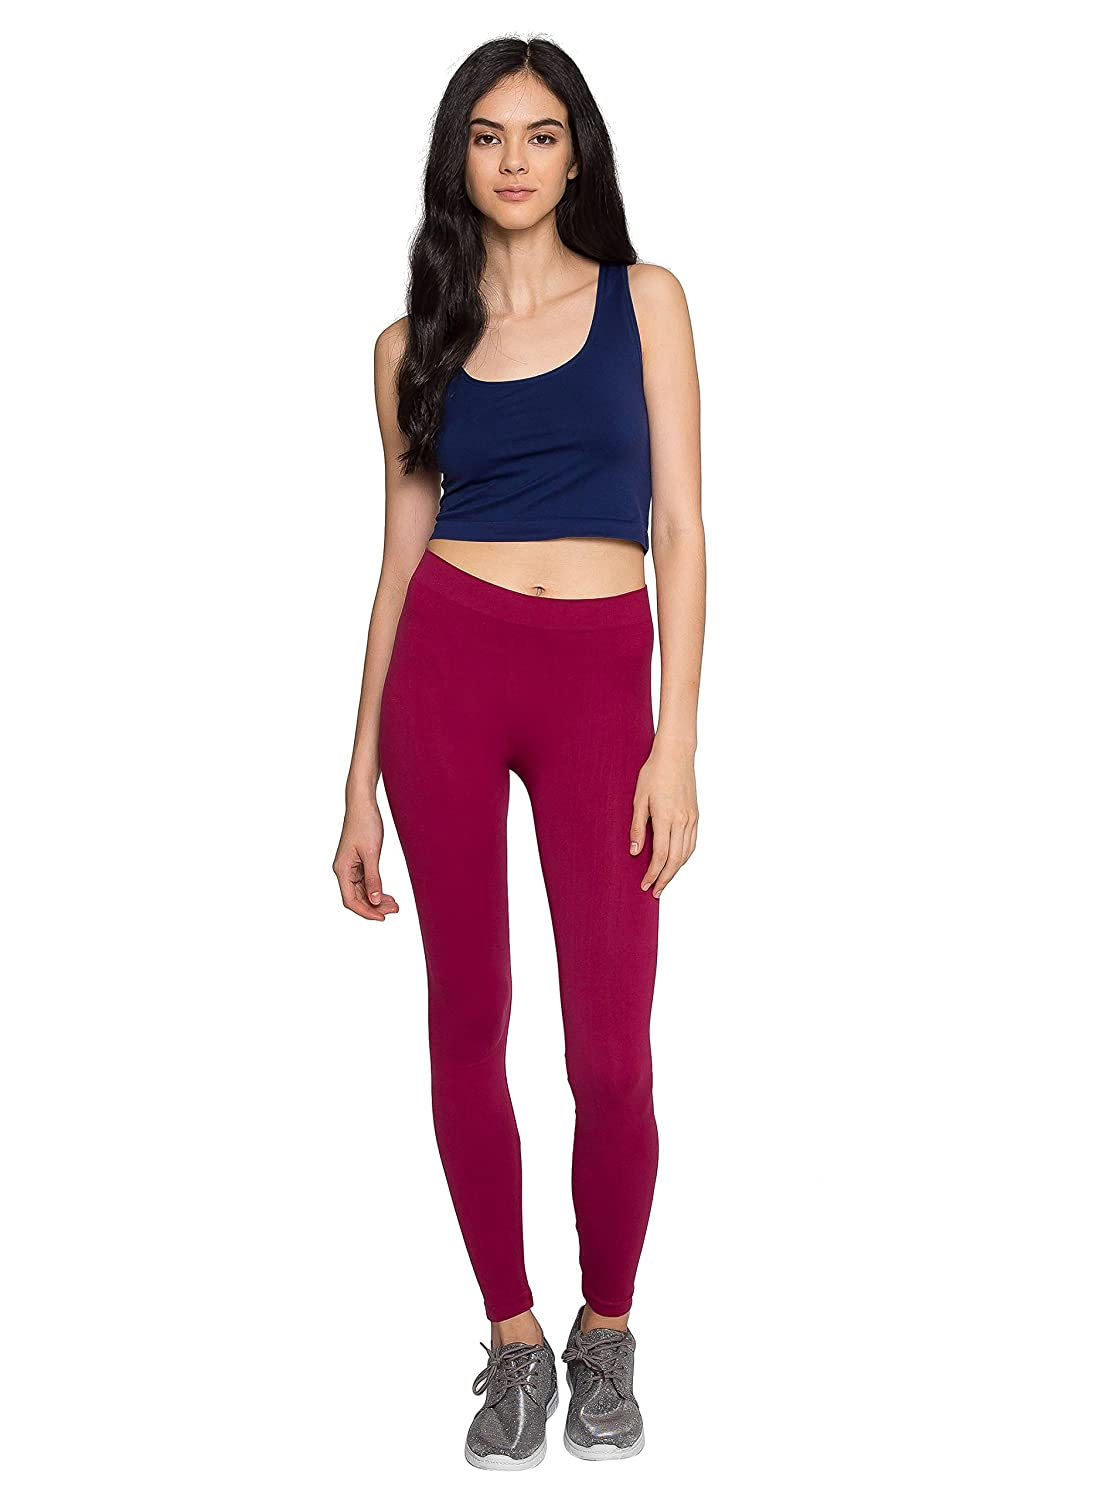 WET SEAL MIST BASIC LEGGINGS IN WINE - BURGUNDY - OS